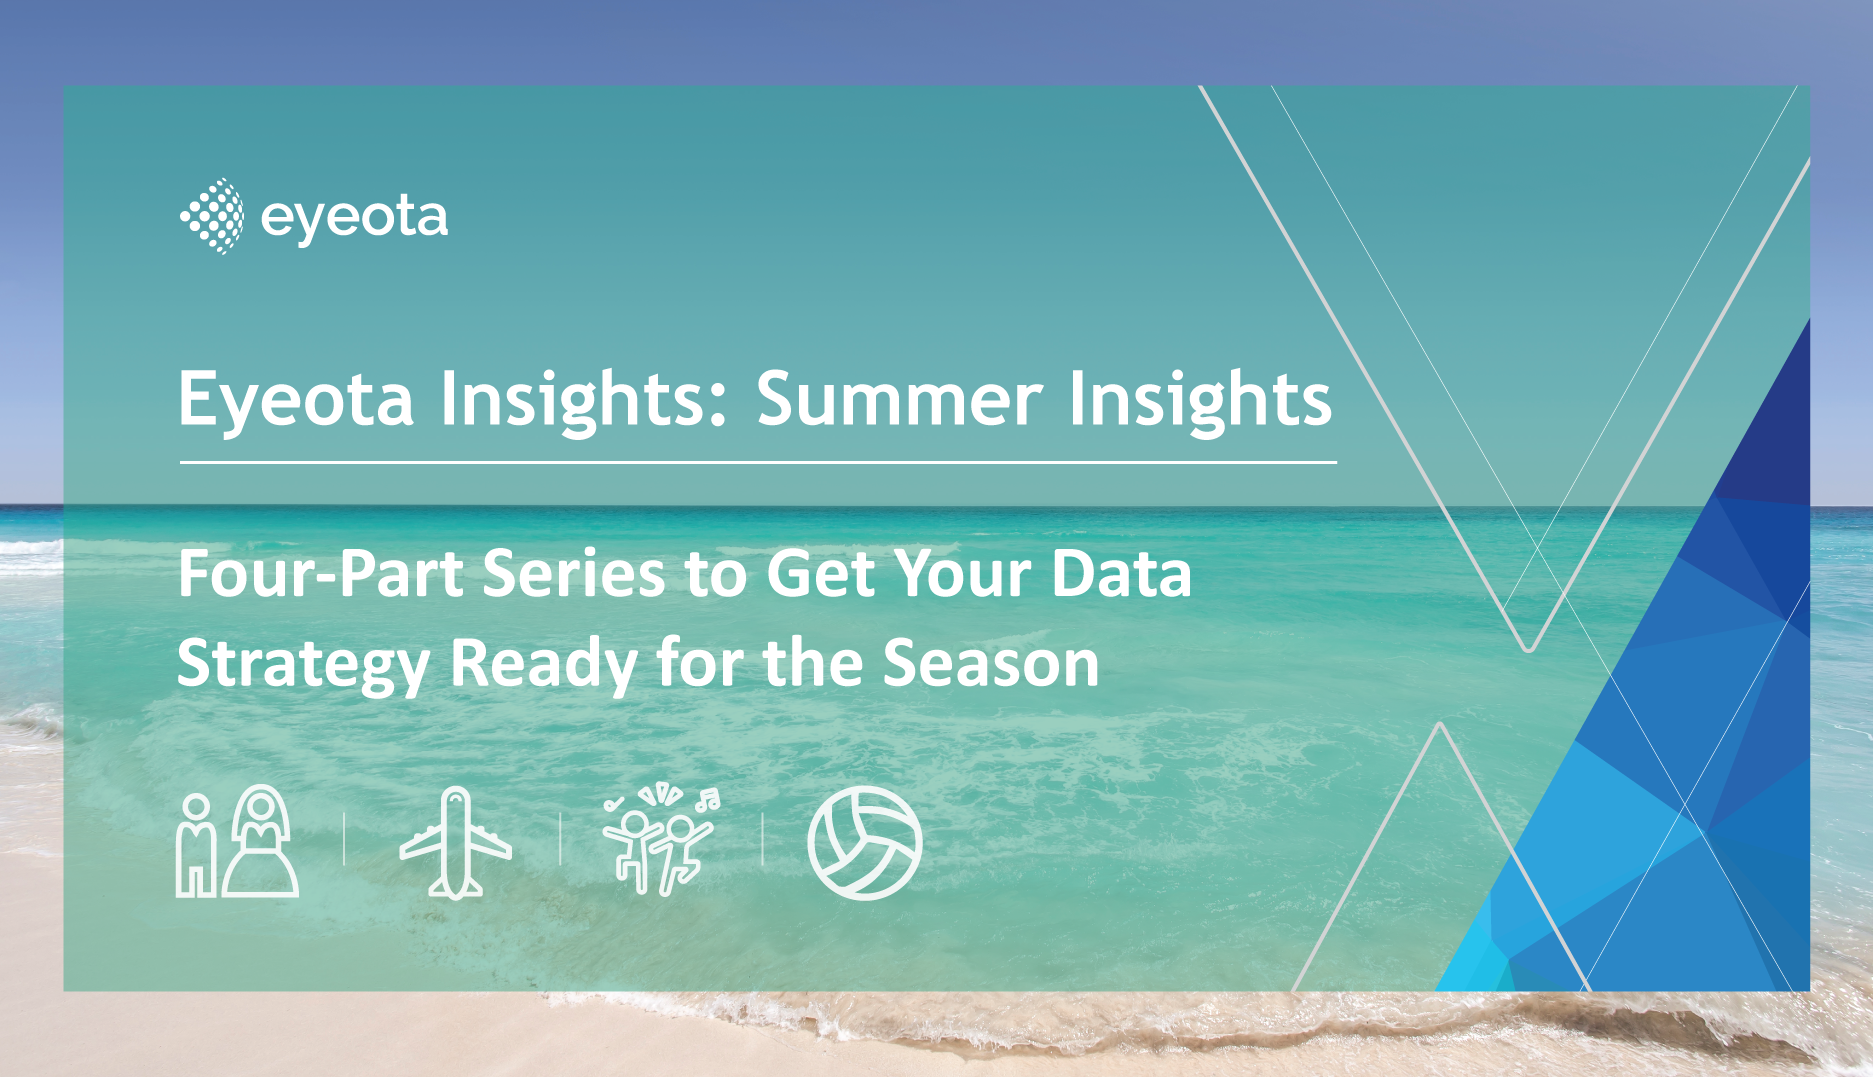 Eyeota Insights: Summer Insights: Four-Part Series to Get Your Data Strategy Ready for the Season